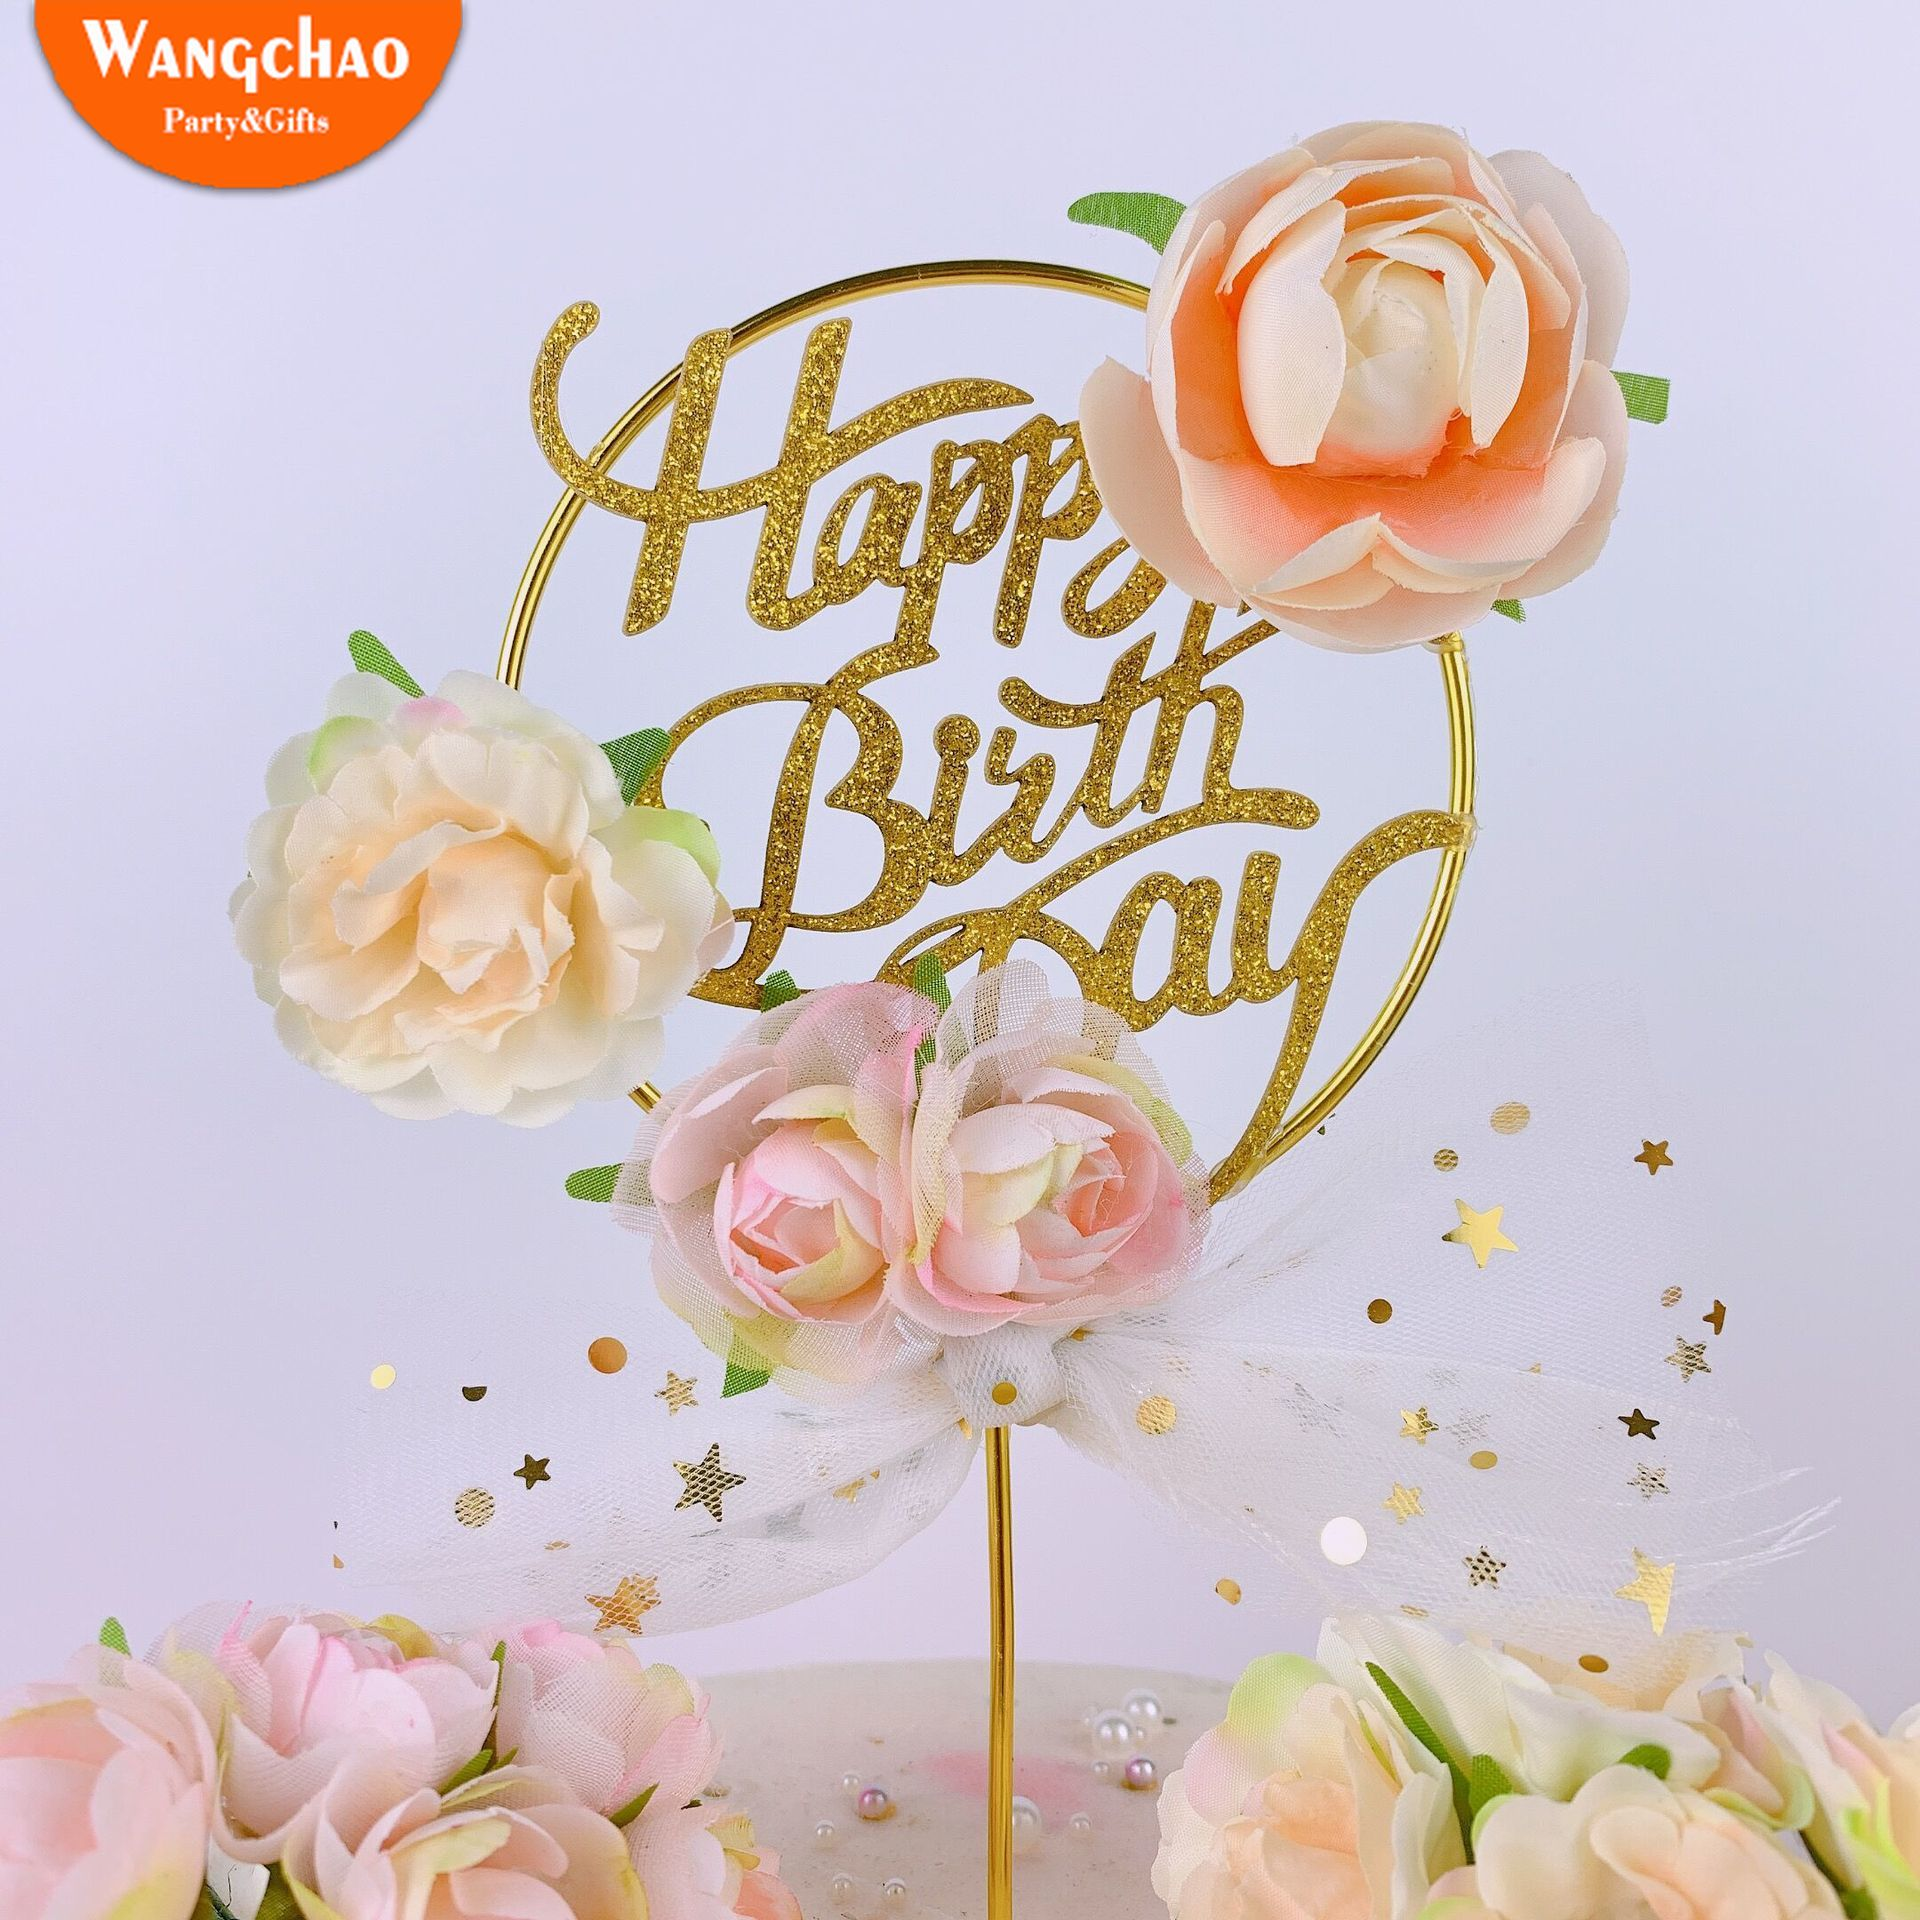 Outstanding B56161 Buy Birthday Toppers For Cakes Women And Get Free Shipping Birthday Cards Printable Benkemecafe Filternl